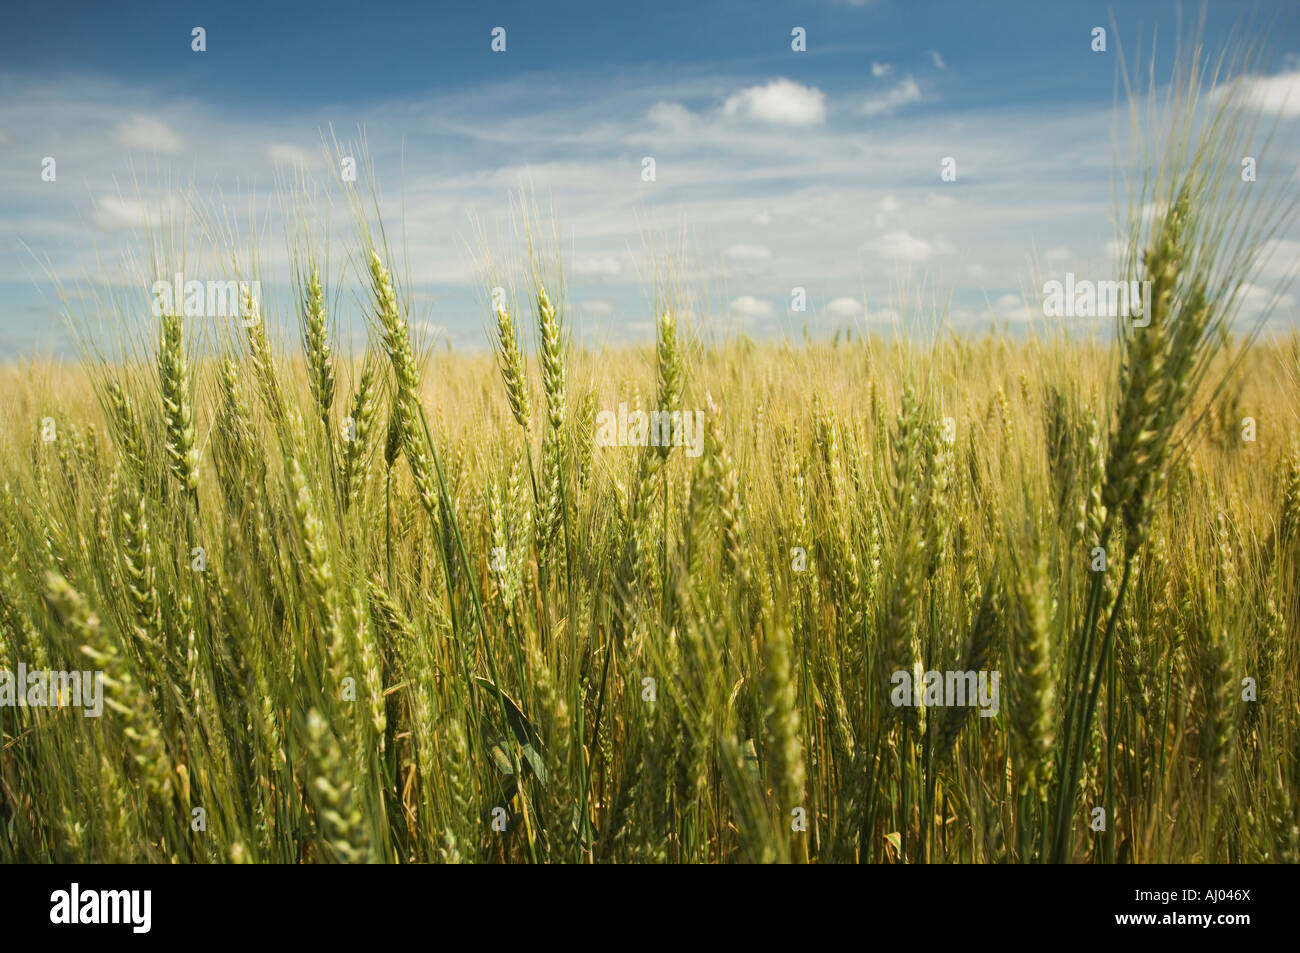 Close up of wheat in field - Stock Image